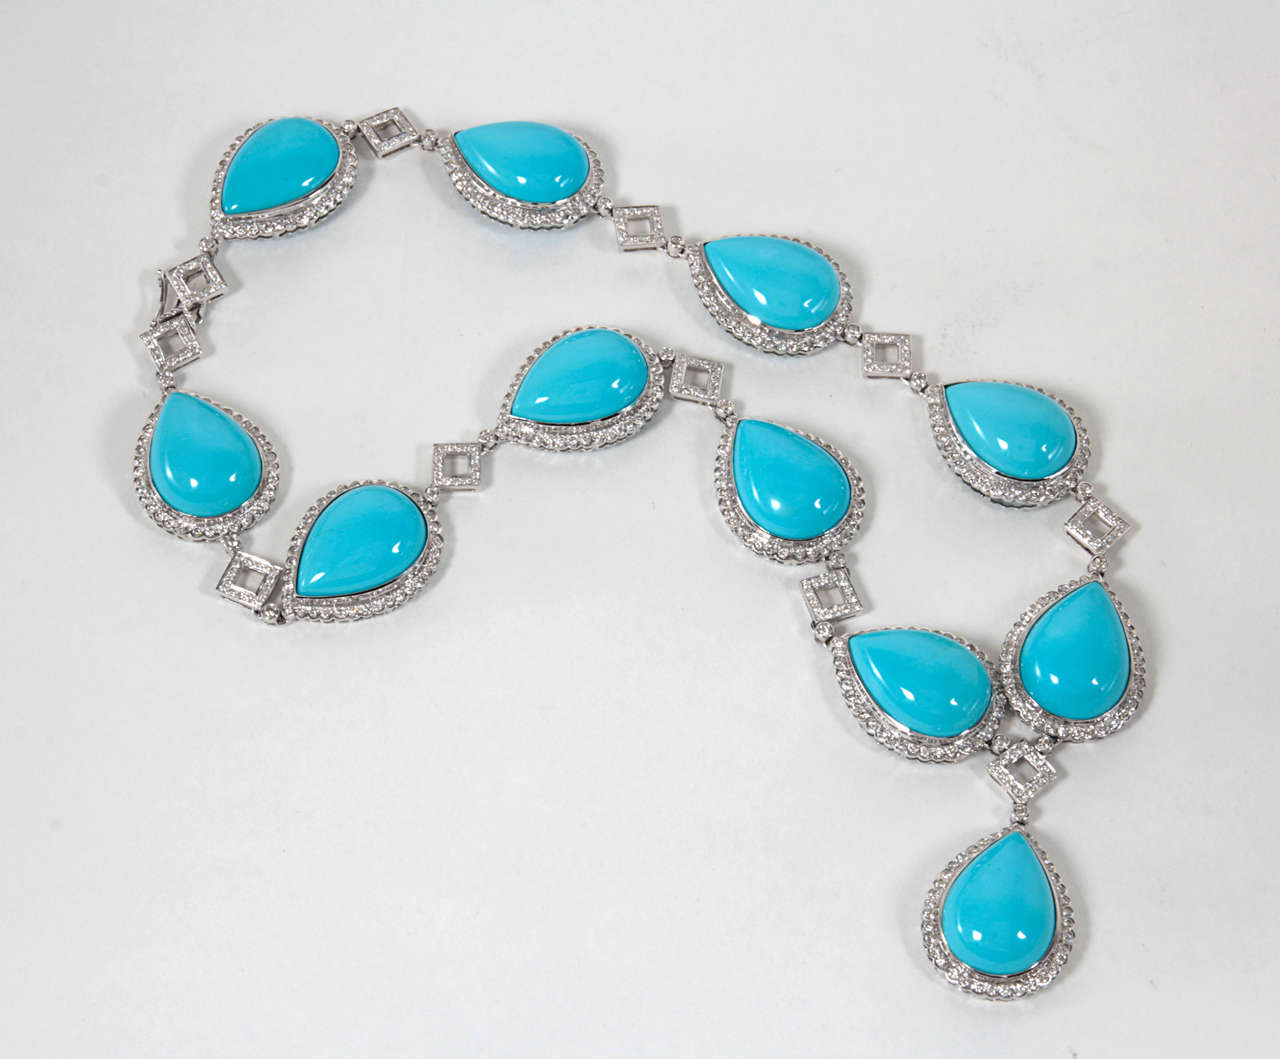 Turquoise and Diamond Necklace and Earring Set 5